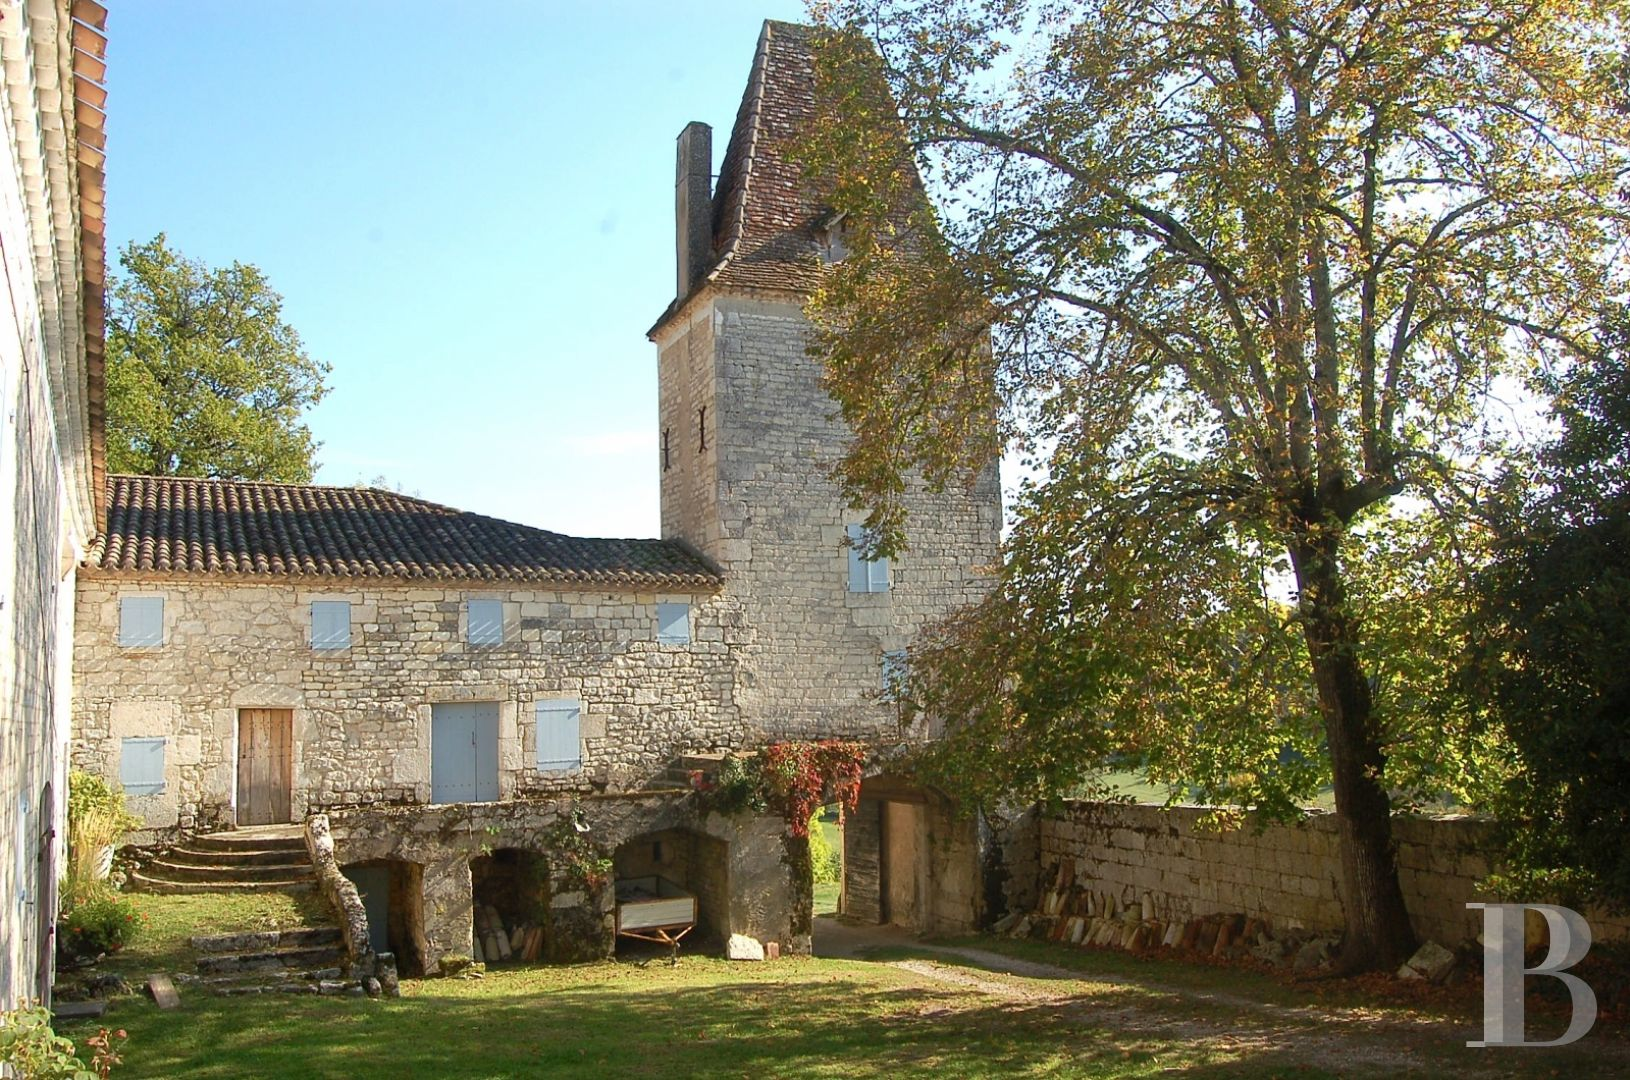 property for sale France midi pyrenees residences historic - 8 zoom